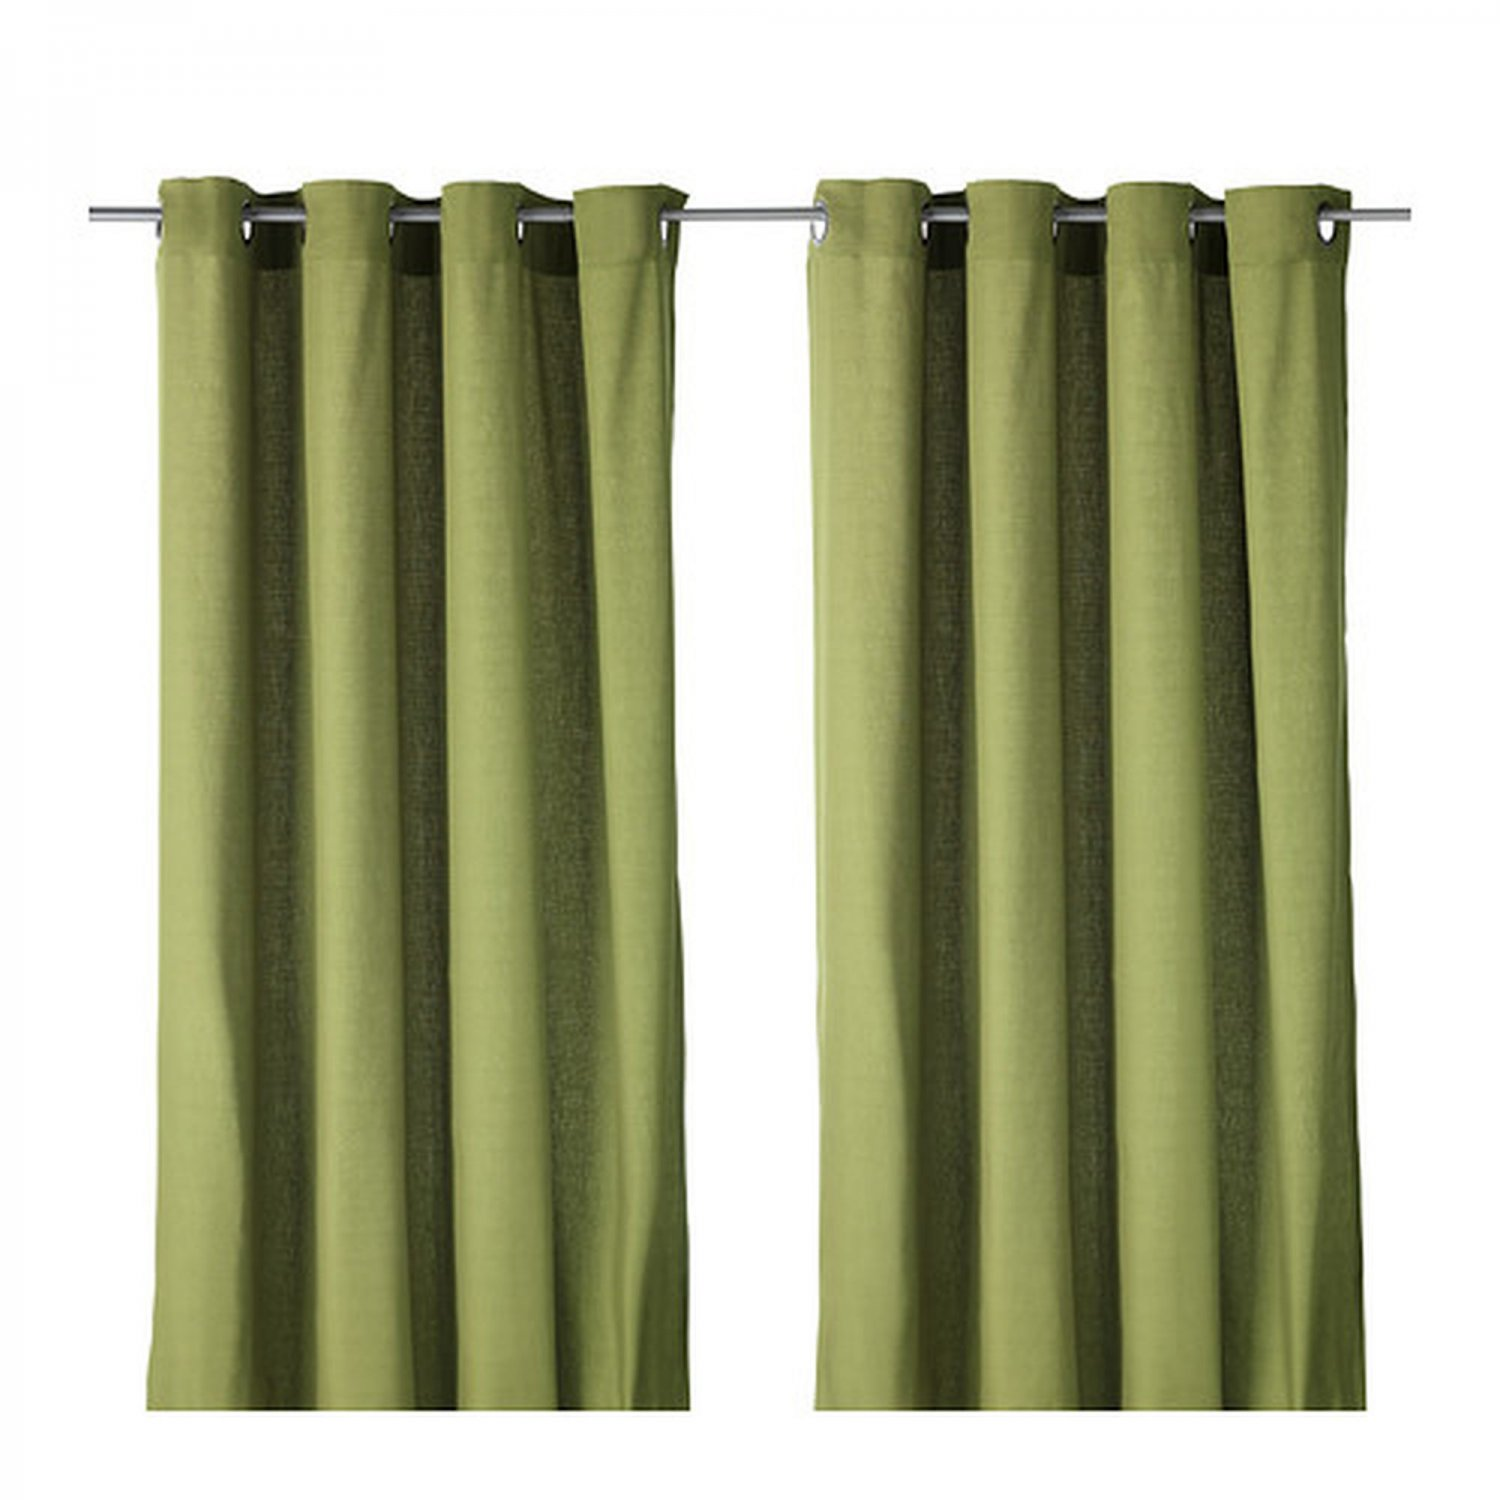 Ikea mariam curtains drapes 2 panels green grommet eyelet for Ikea curtain rods uk